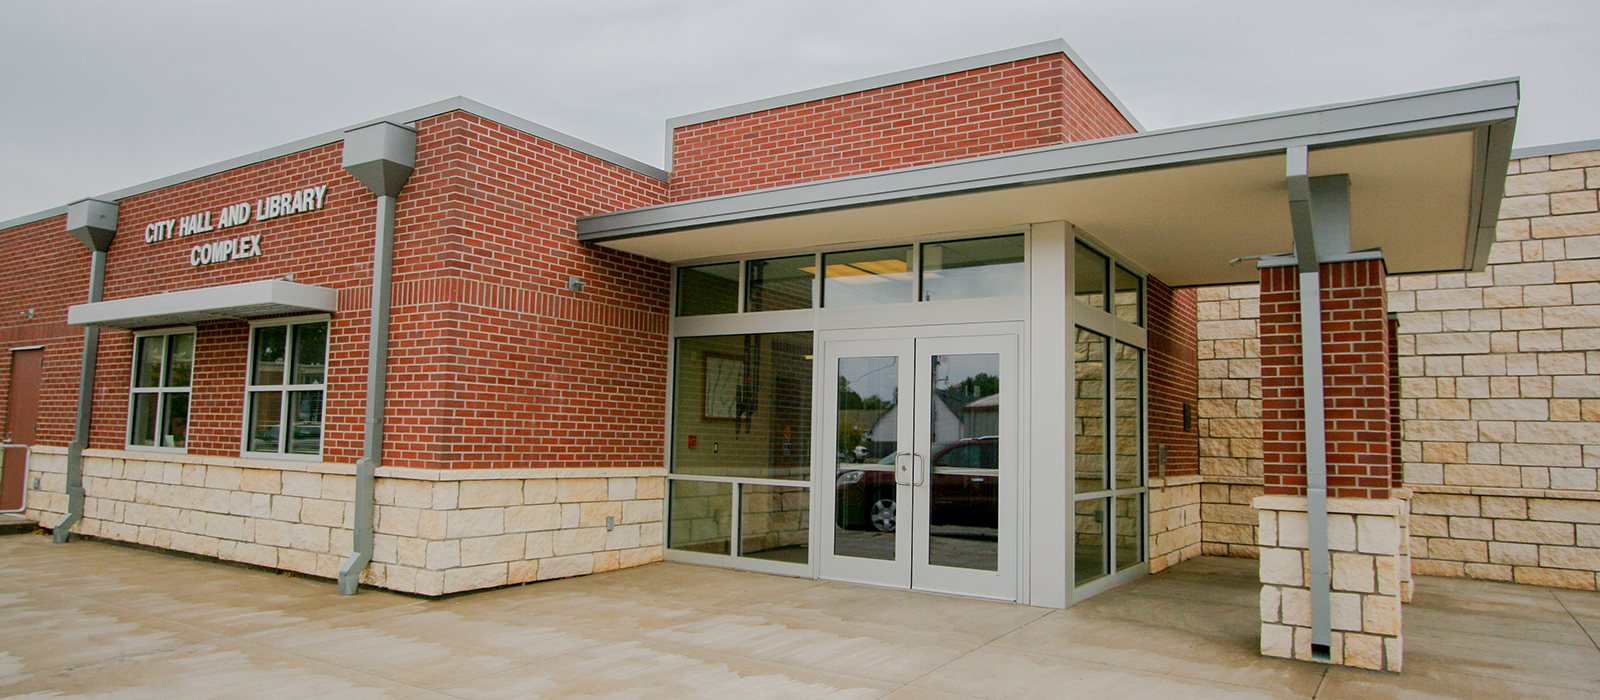 Lyons City Hall and Library | WDM Community Architecture